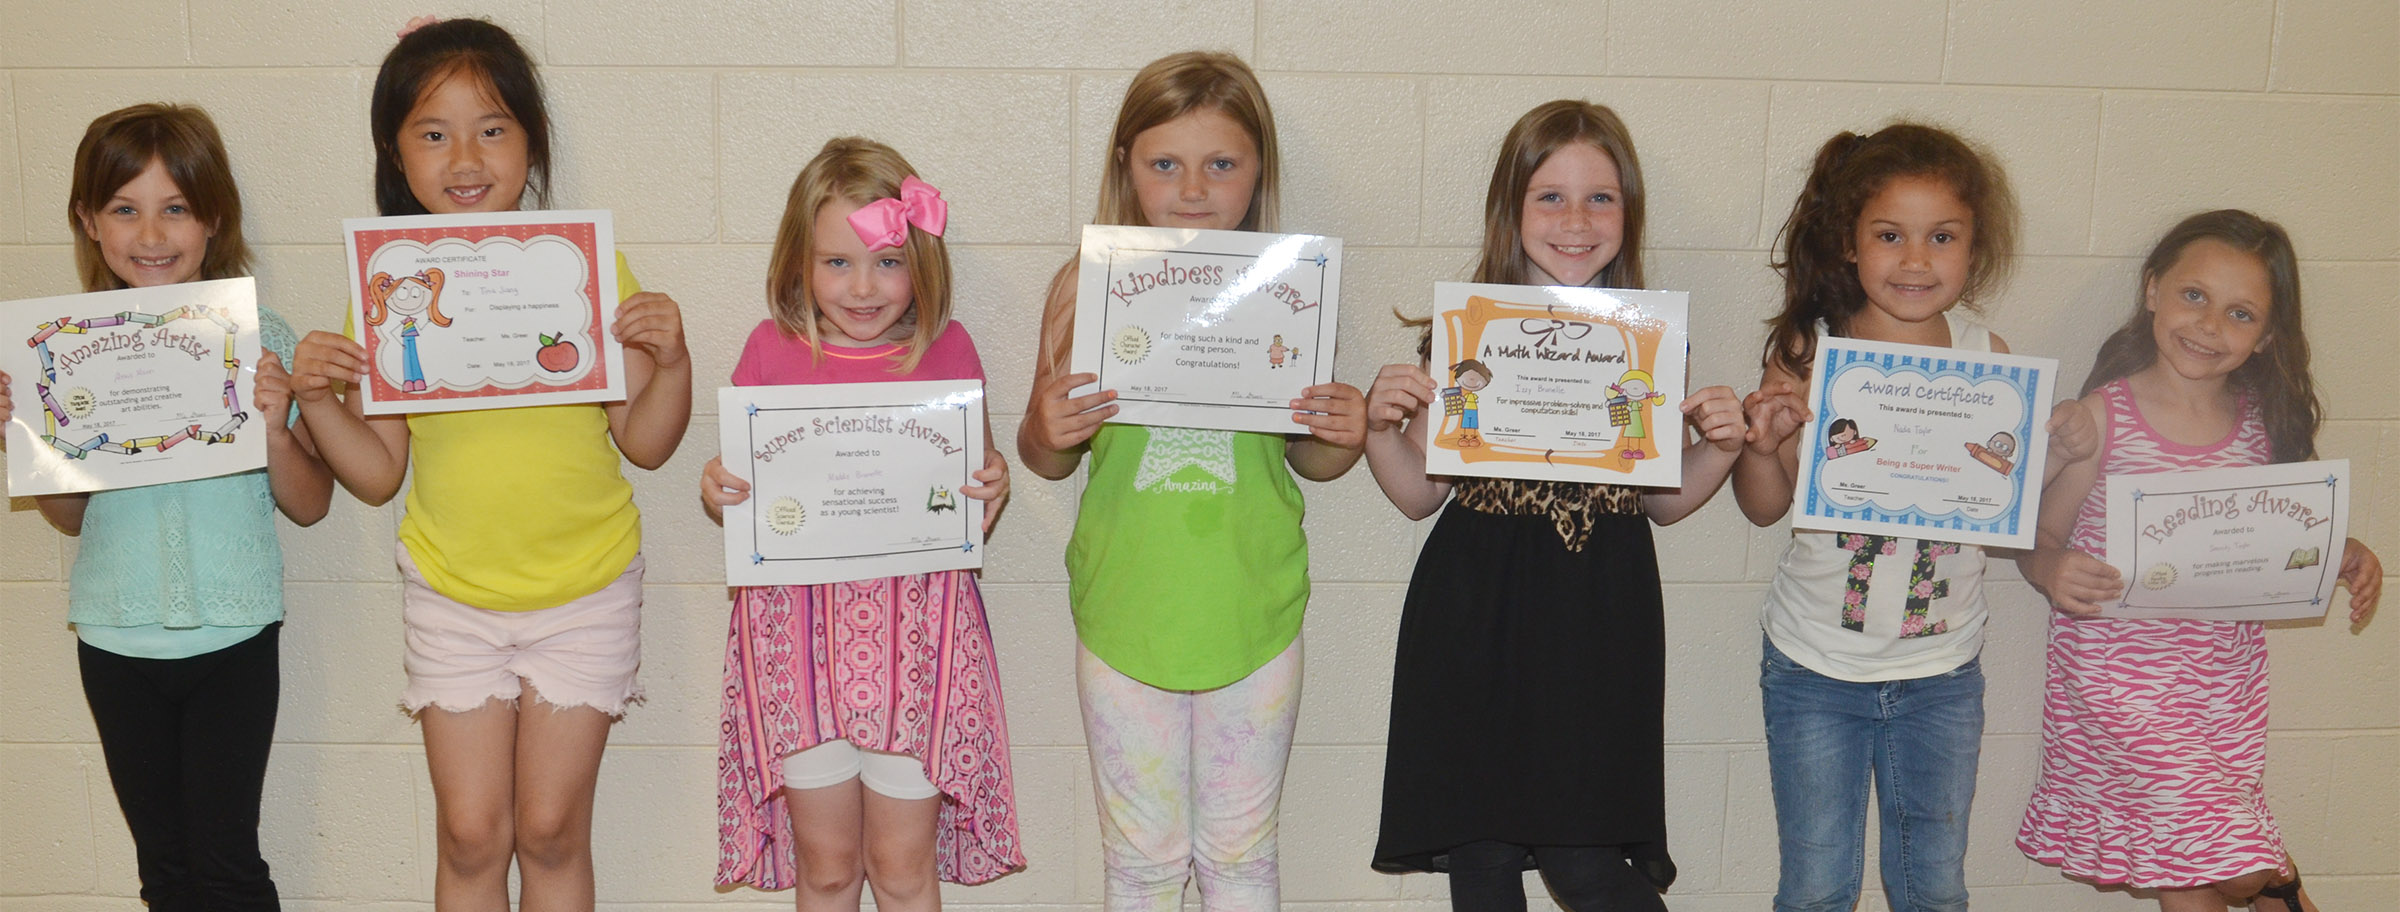 CES first-graders in Amanda Greer's class recently received awards for their academic work and classroom behavior this school year. From left are Alexis Mann, Tina Jiang, Maddie Brunelle, Asia Singleton, Izzy Brunelle, Nadia Taylor and Serenity Taylor.